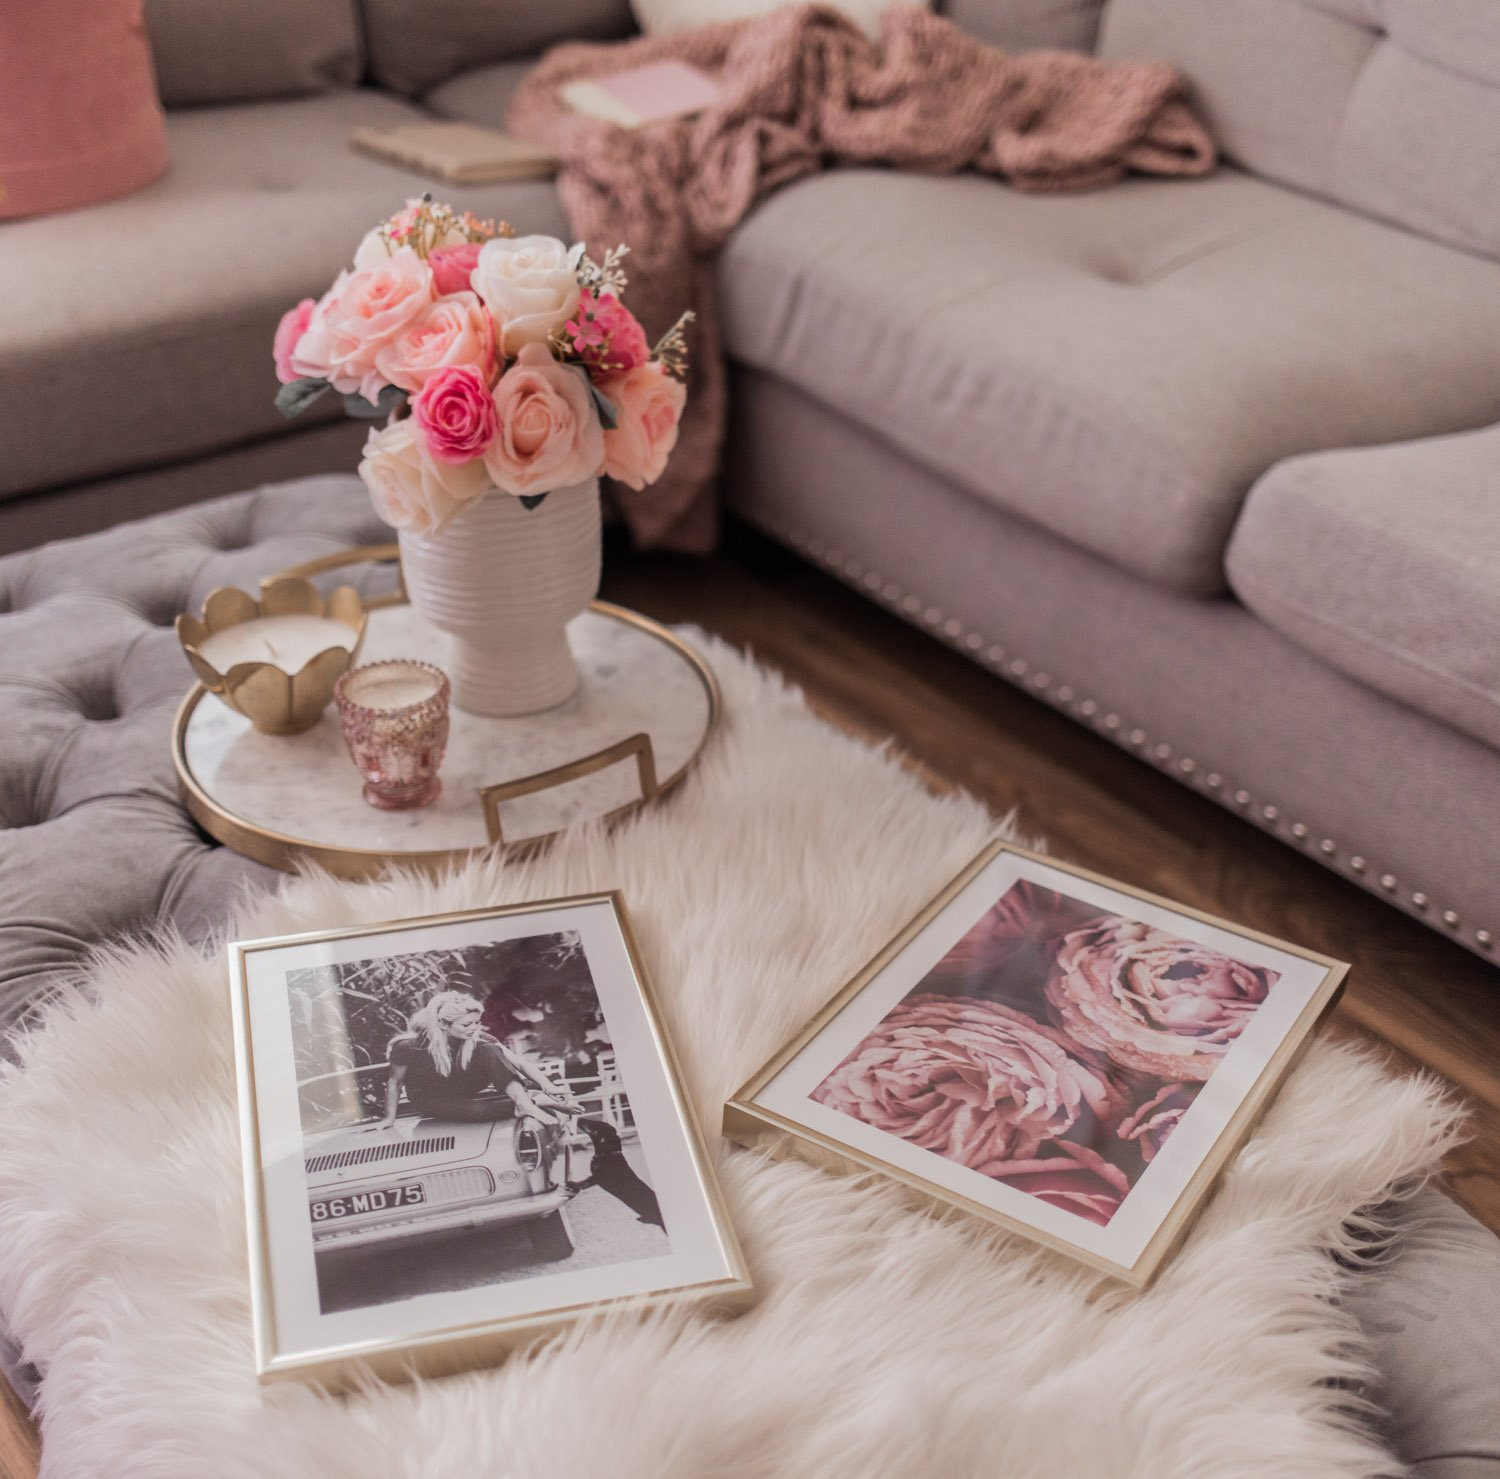 Elizabeth Hugen of Lizzie in Lace shares her feminine home decor including a pink gallery wall